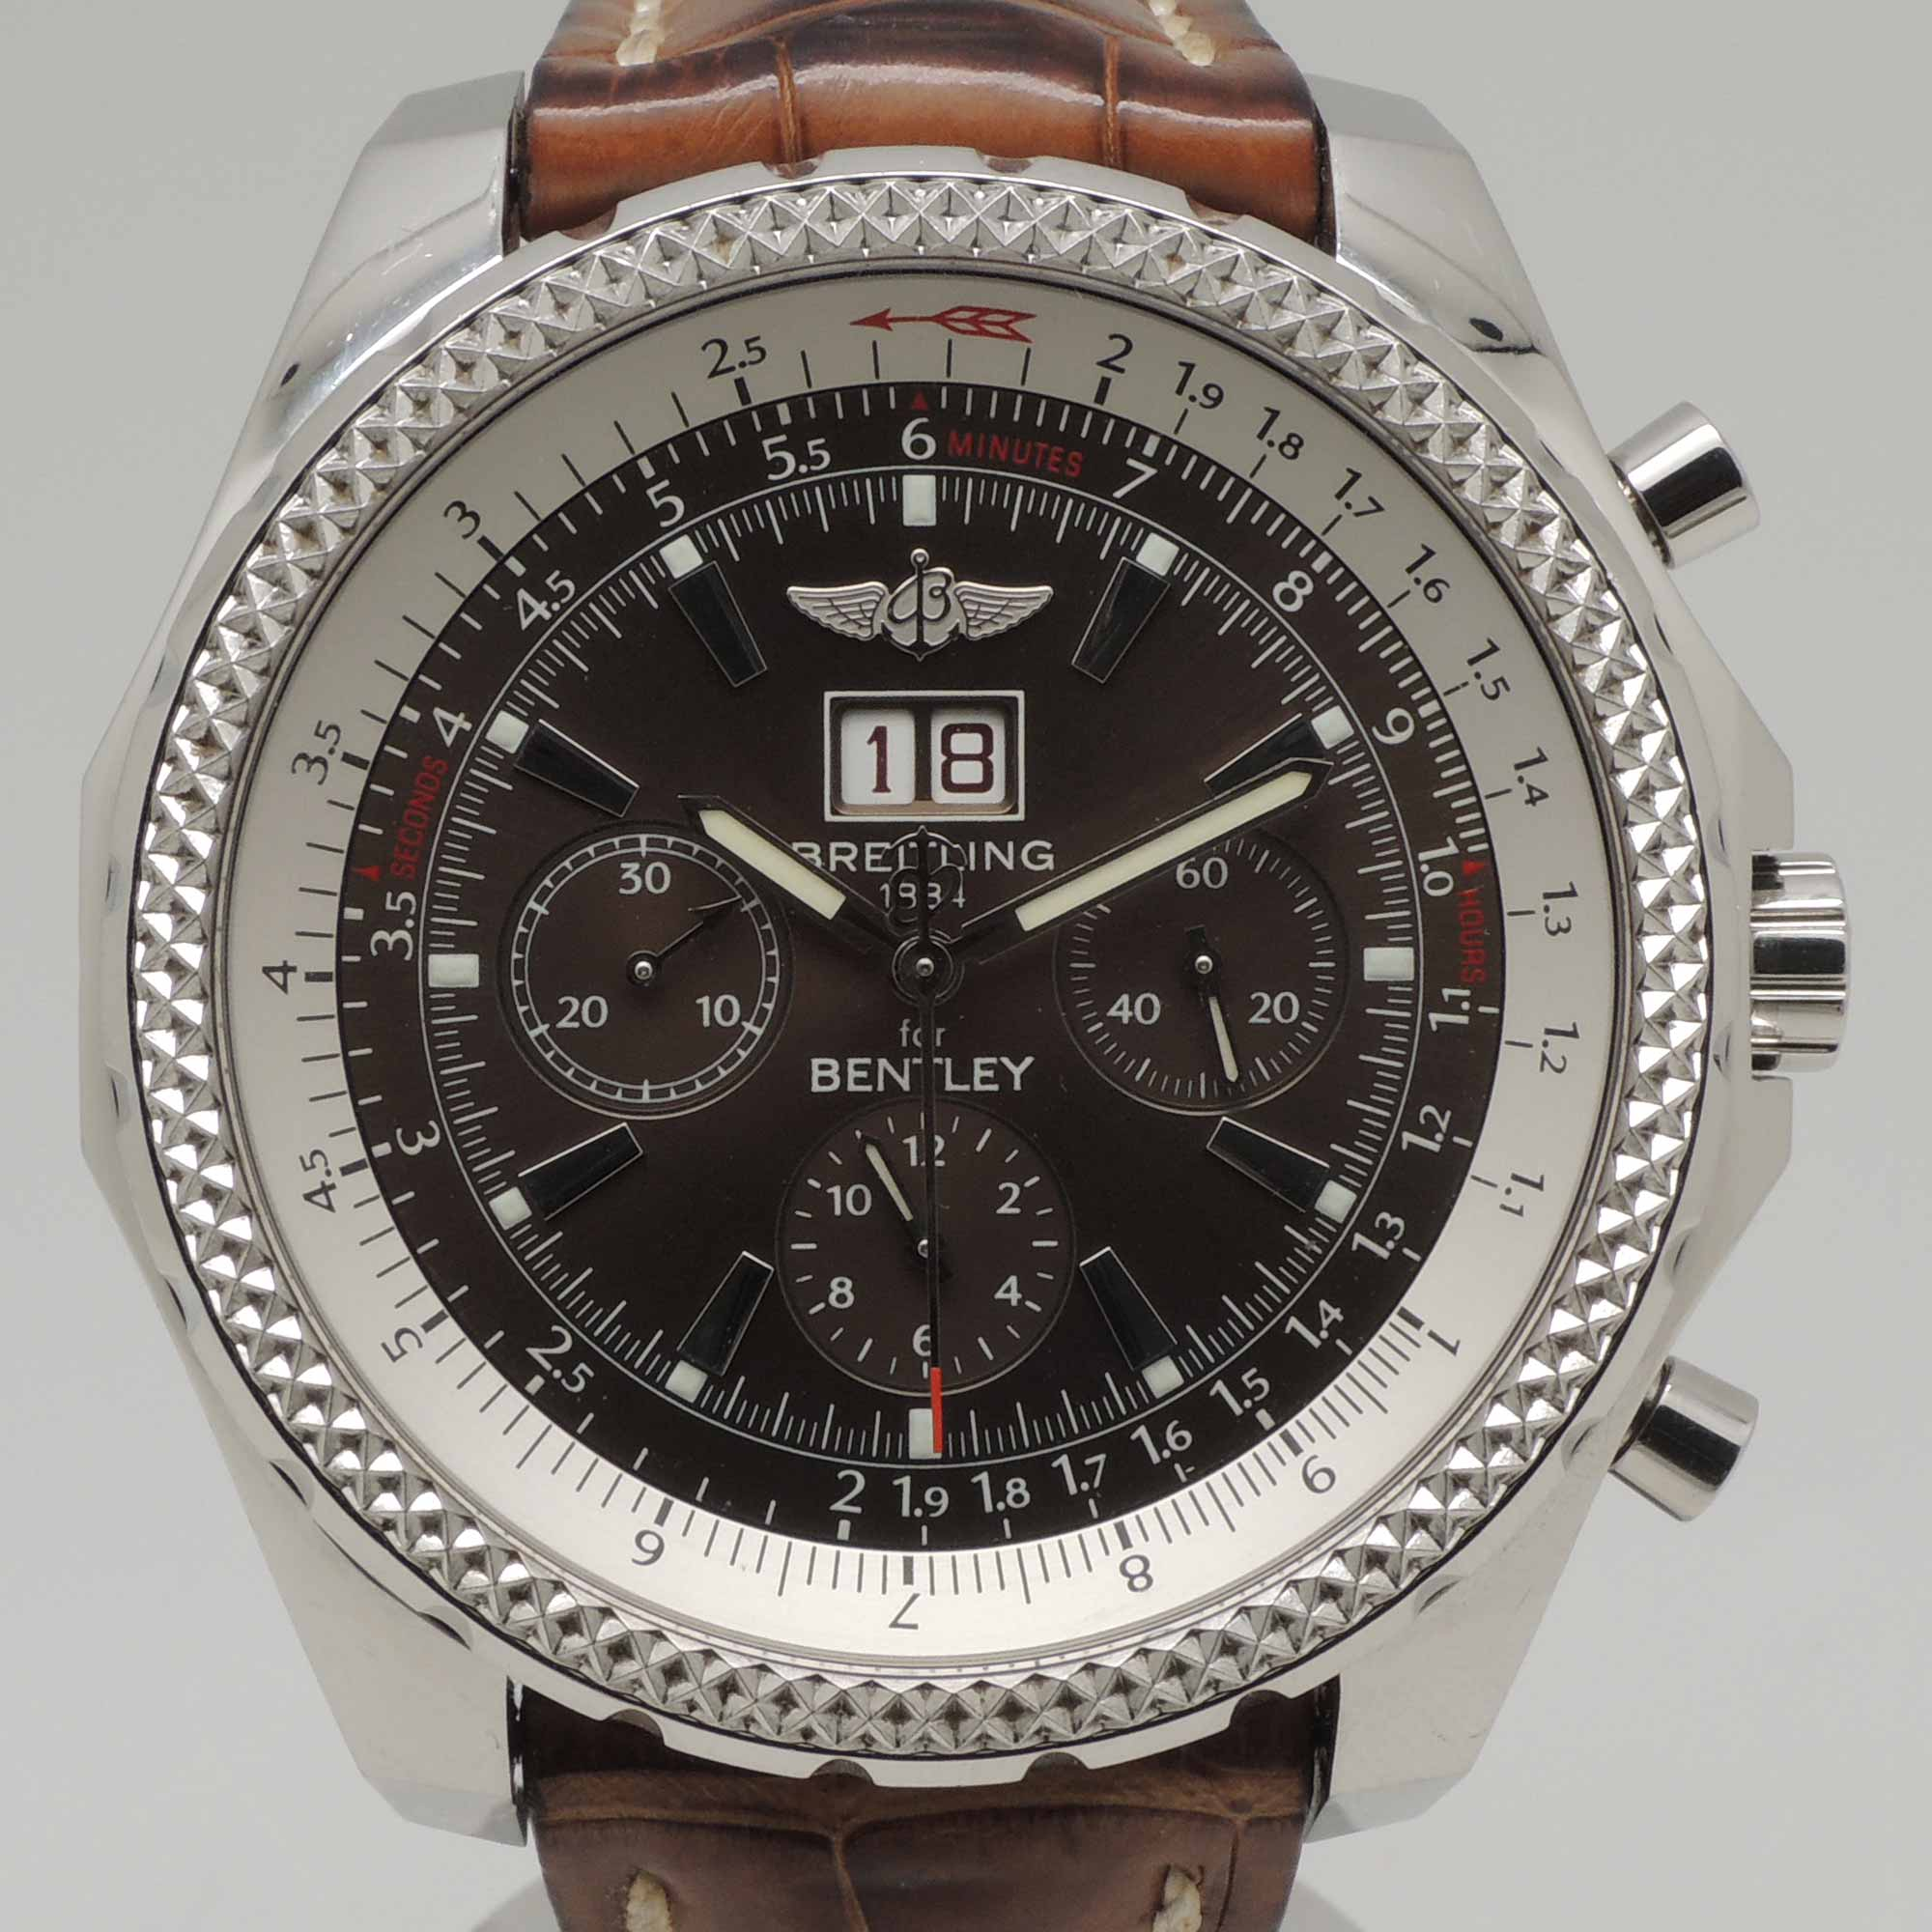 Breitling Bentley 6 75 A44362 Buy And Sell Watches Rolex Patek Philippe